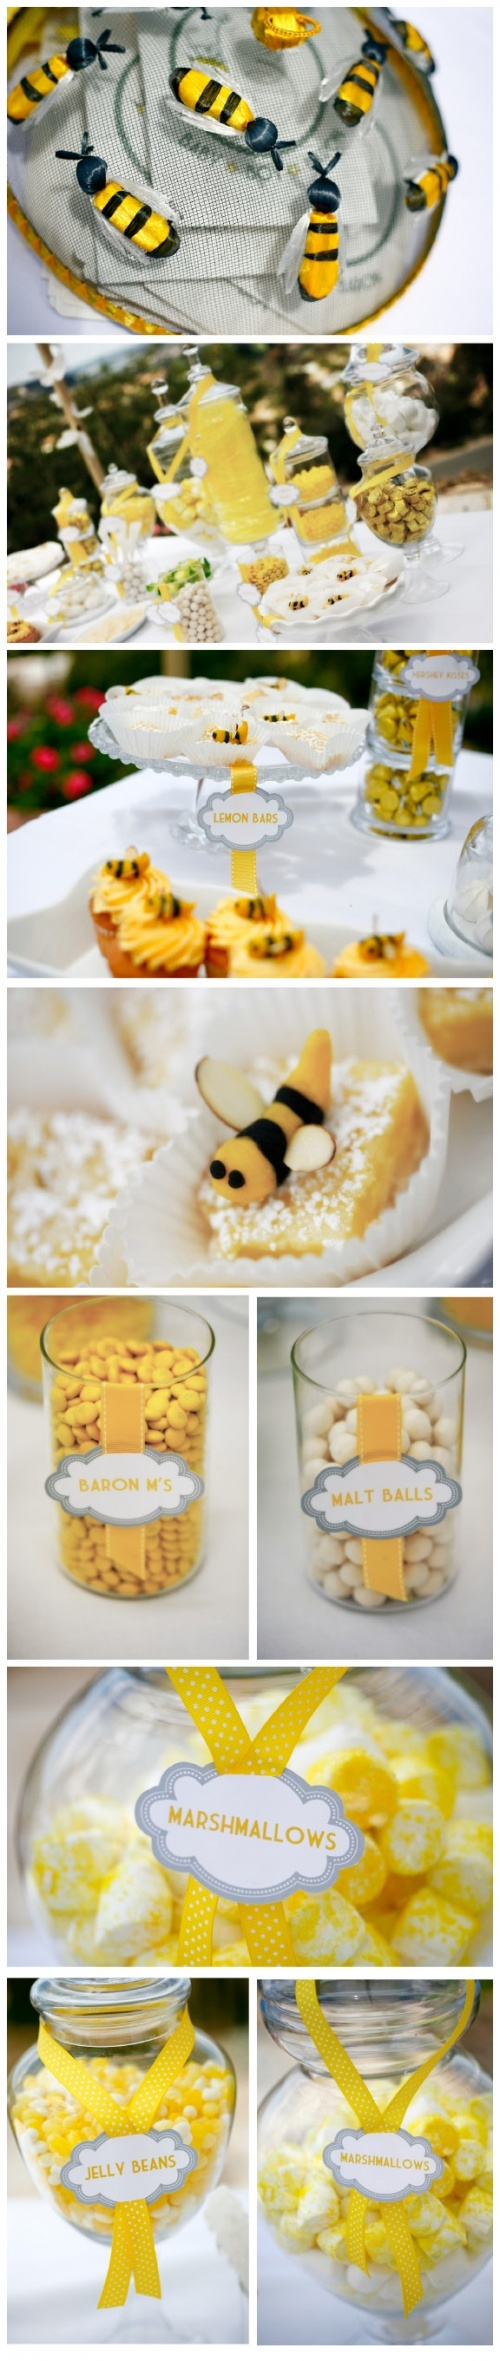 baby shower bumble bee theme i like it for a spring or summer theme